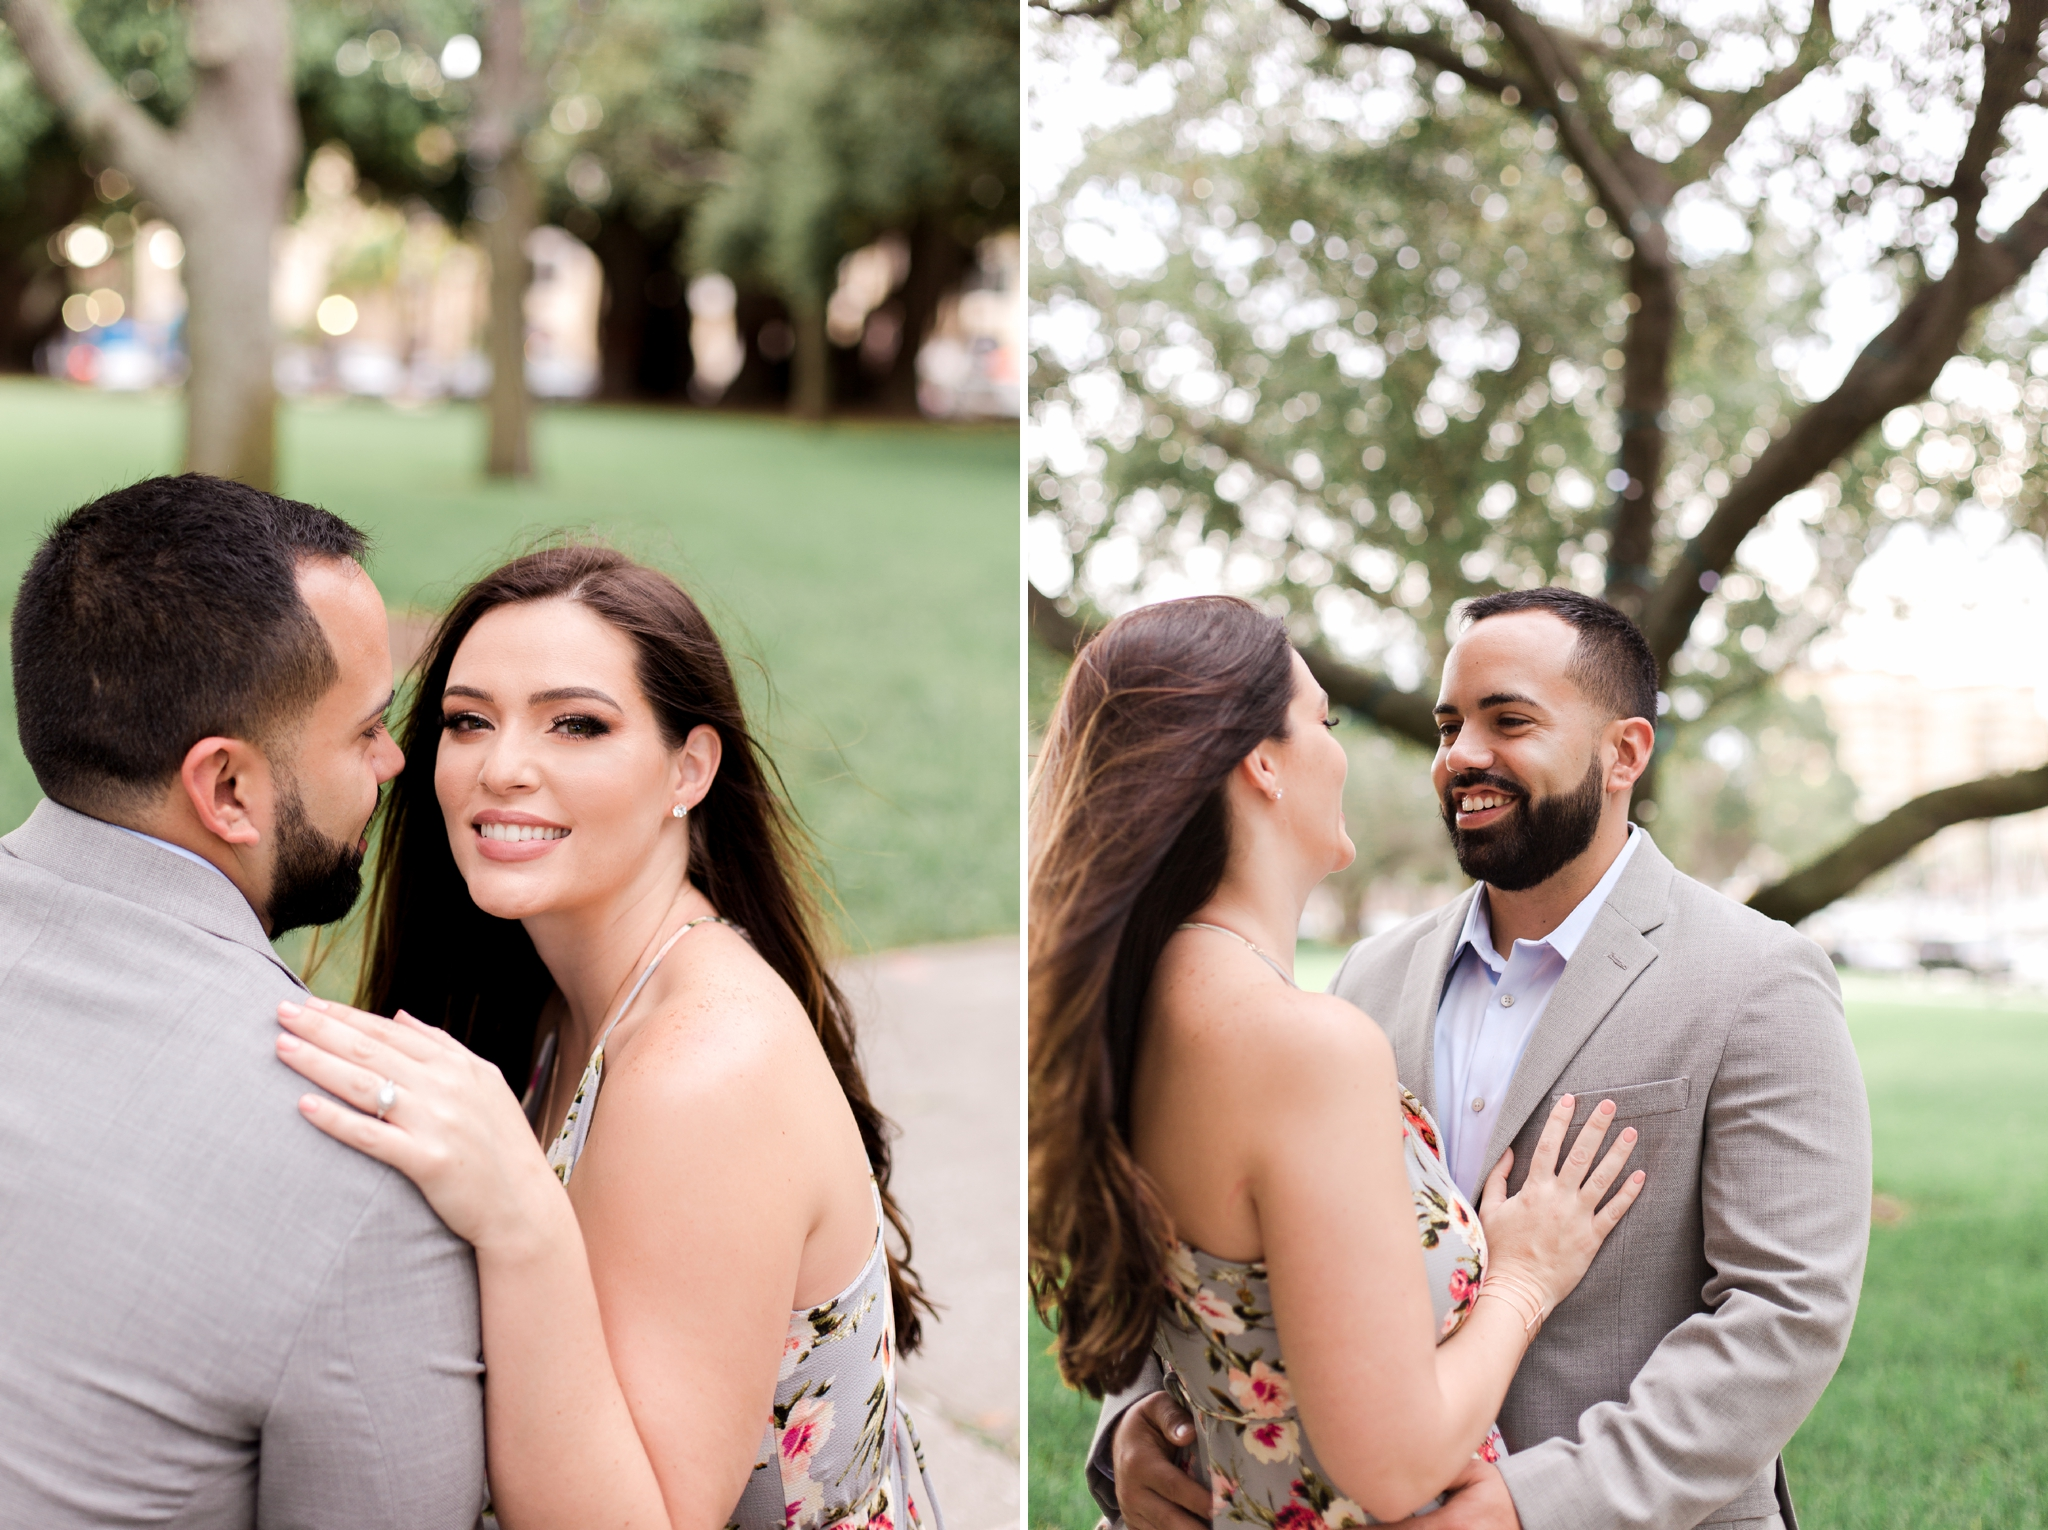 St-pete-florida-engagement-session-nicole-mike-I58A6717.jpg